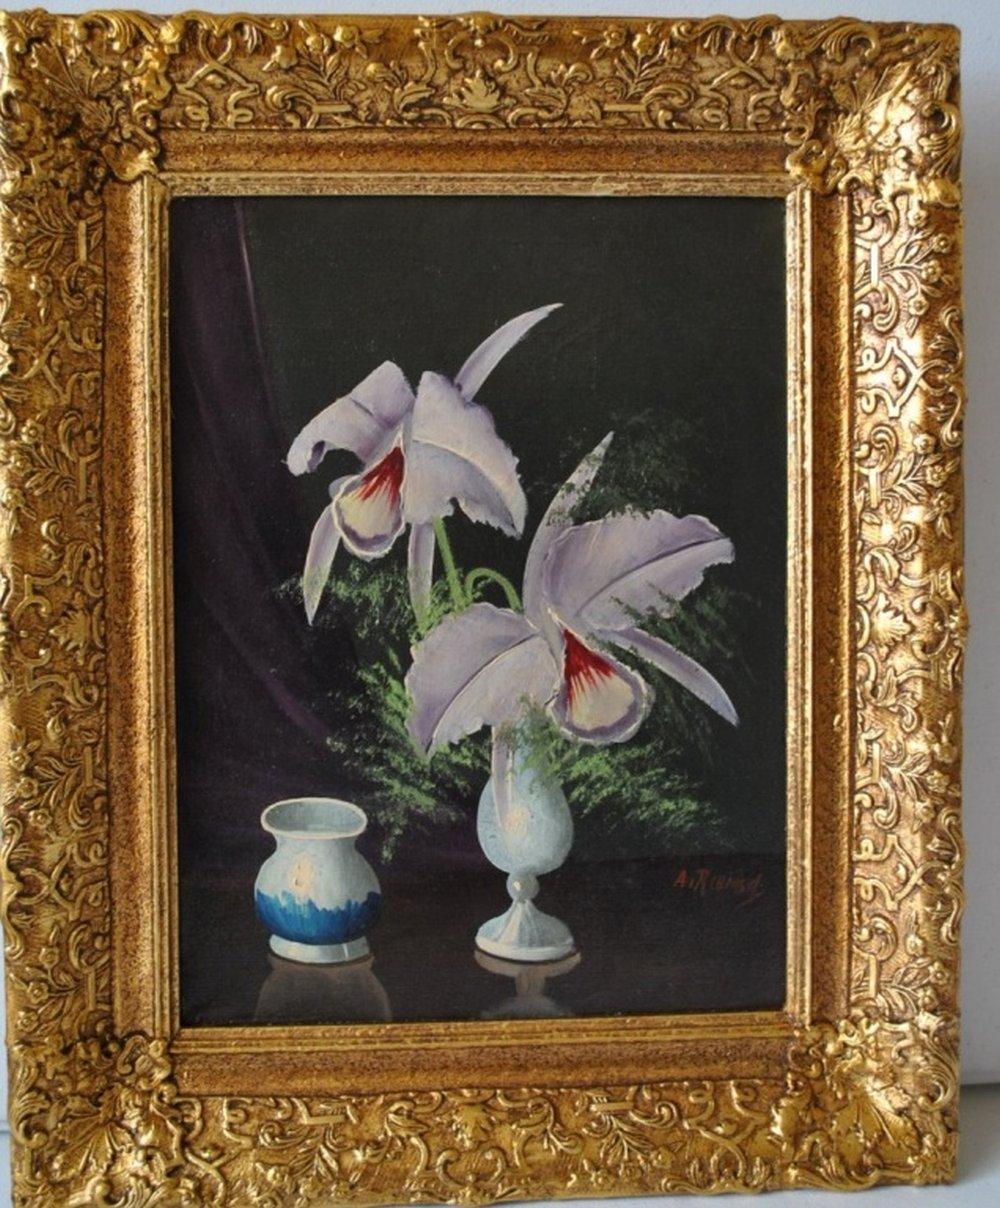 Still Pictures Are All Very Fine And >> Very Fine Original Oil Still Life